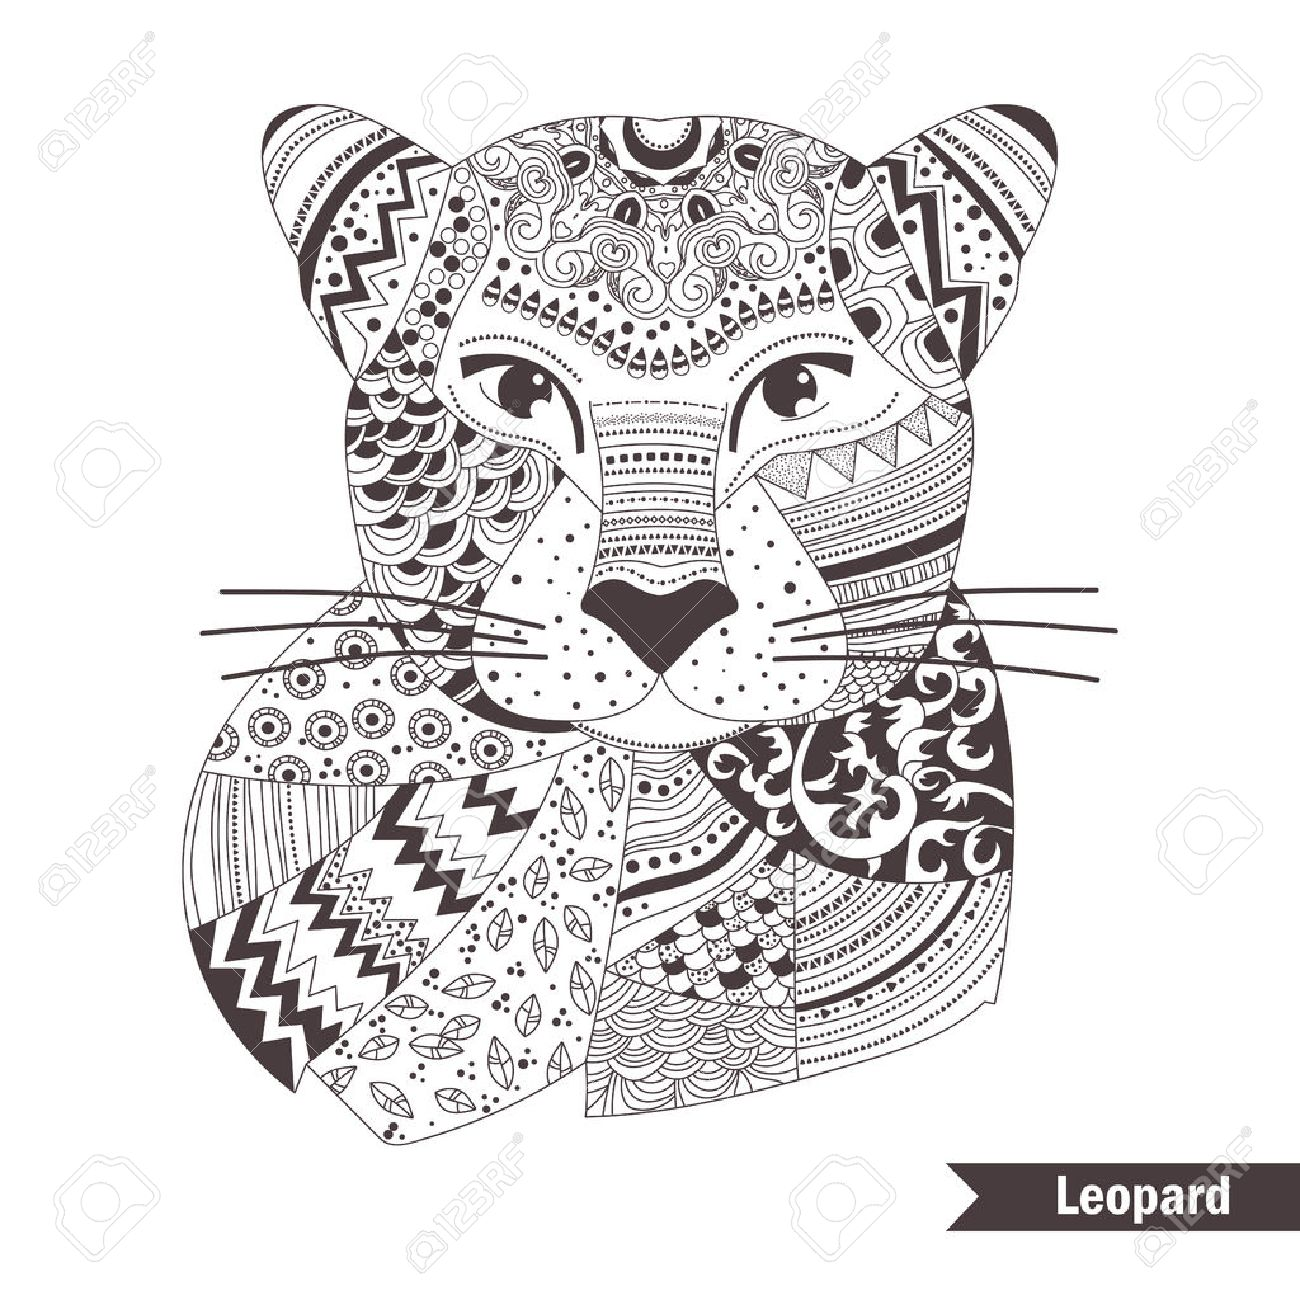 Leopard Coloring Book For Adult Antistress Coloring Pages